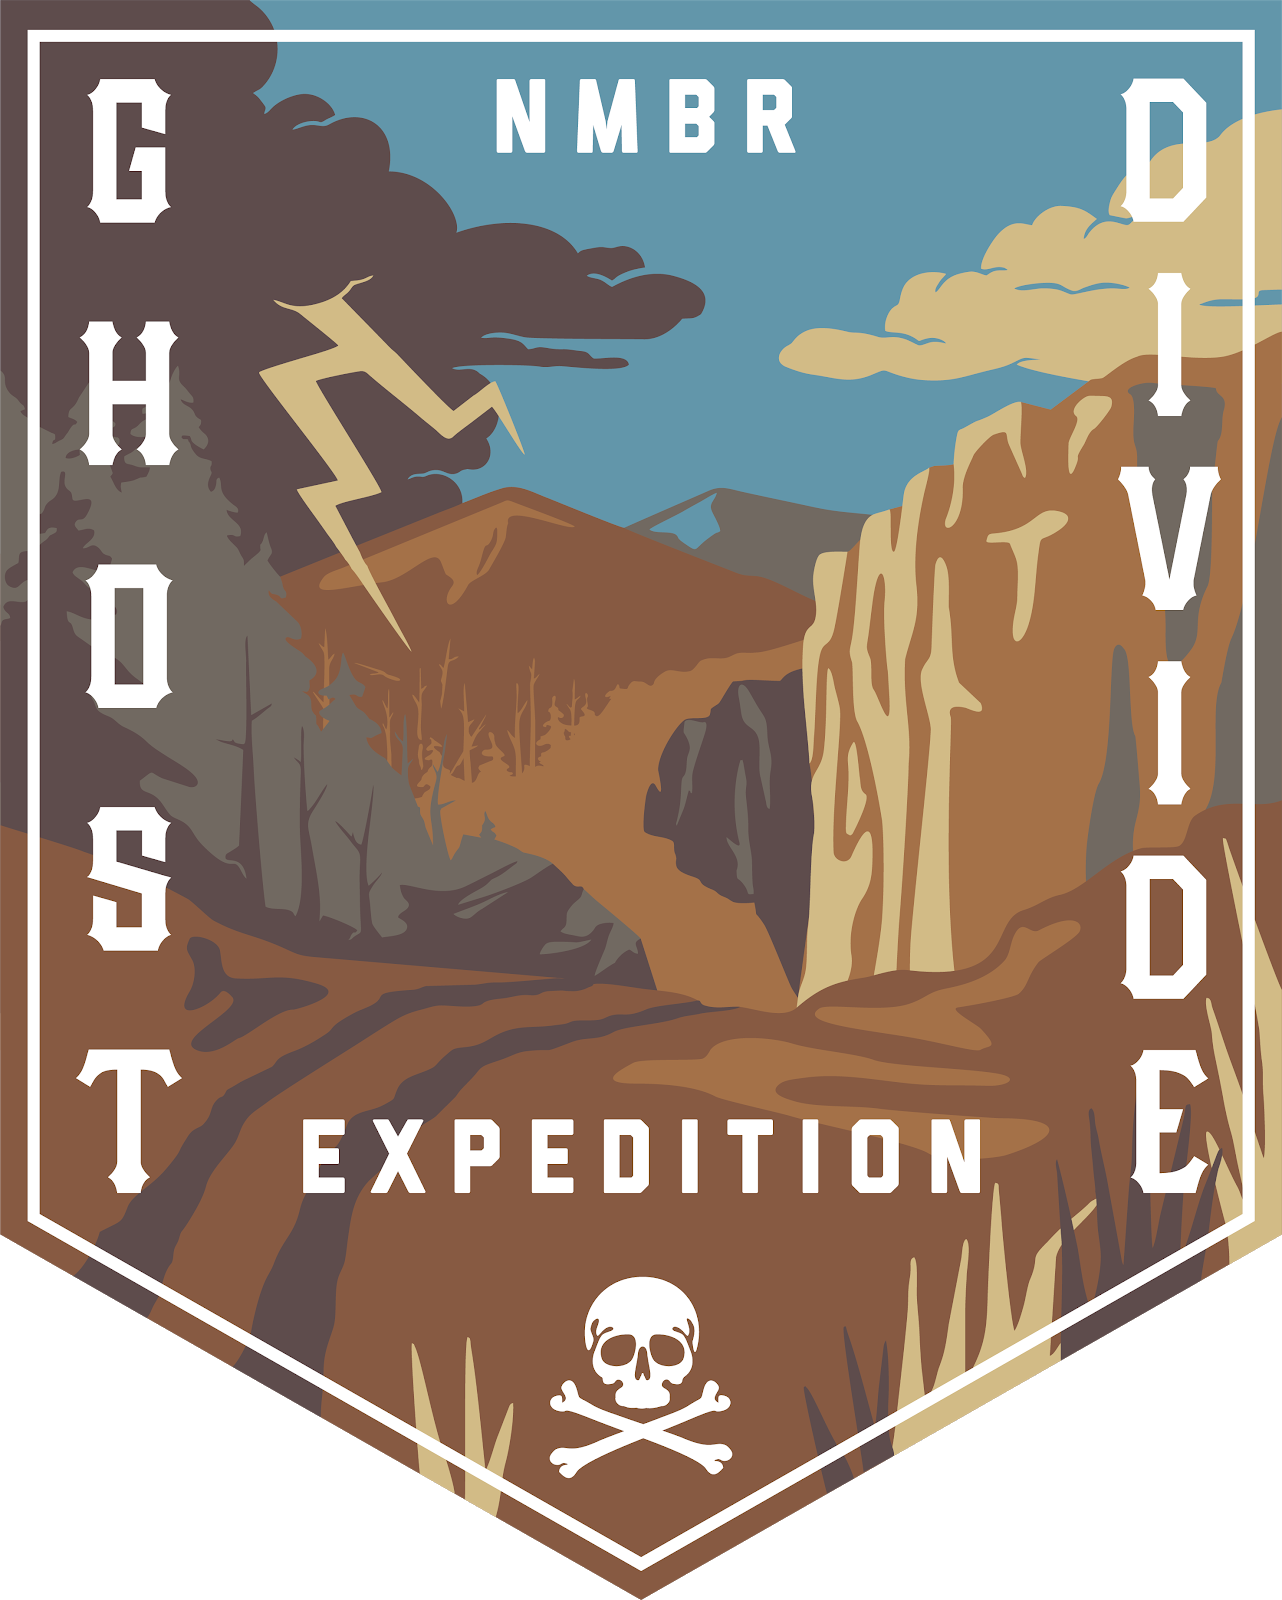 MAY 2020 - GHOST DIVIDE EXPEDITION